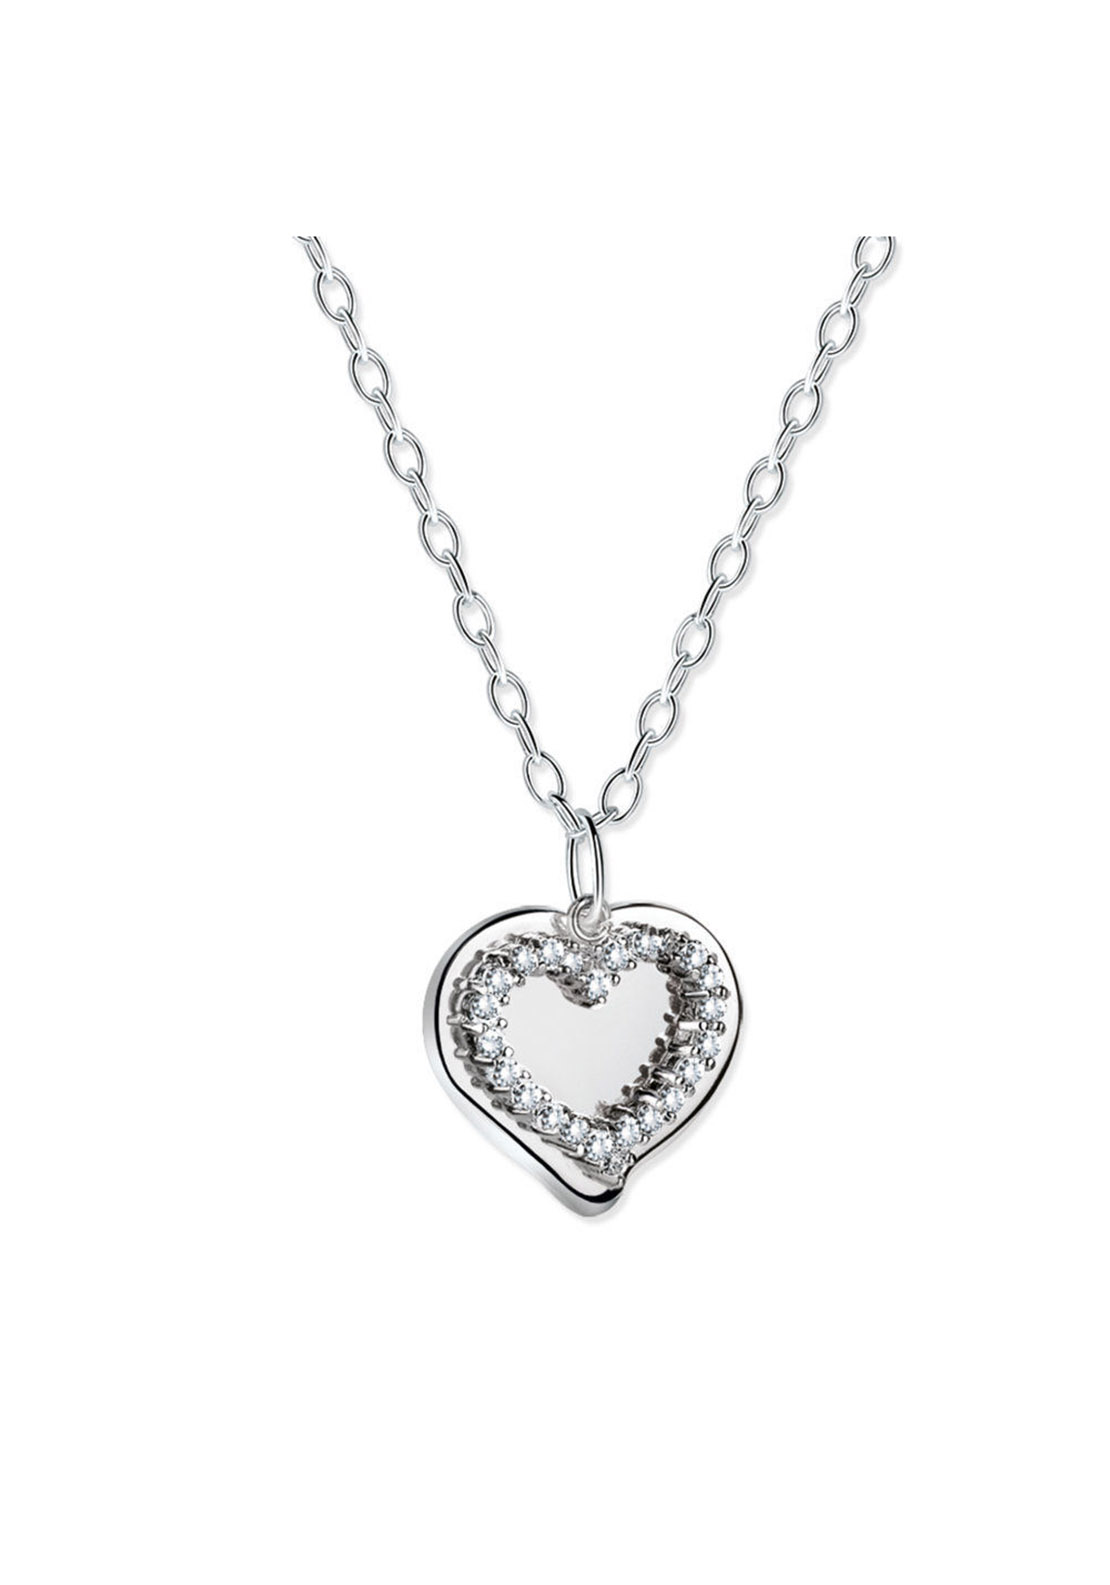 Newbridge Mementos Pendant with Heart, Silver